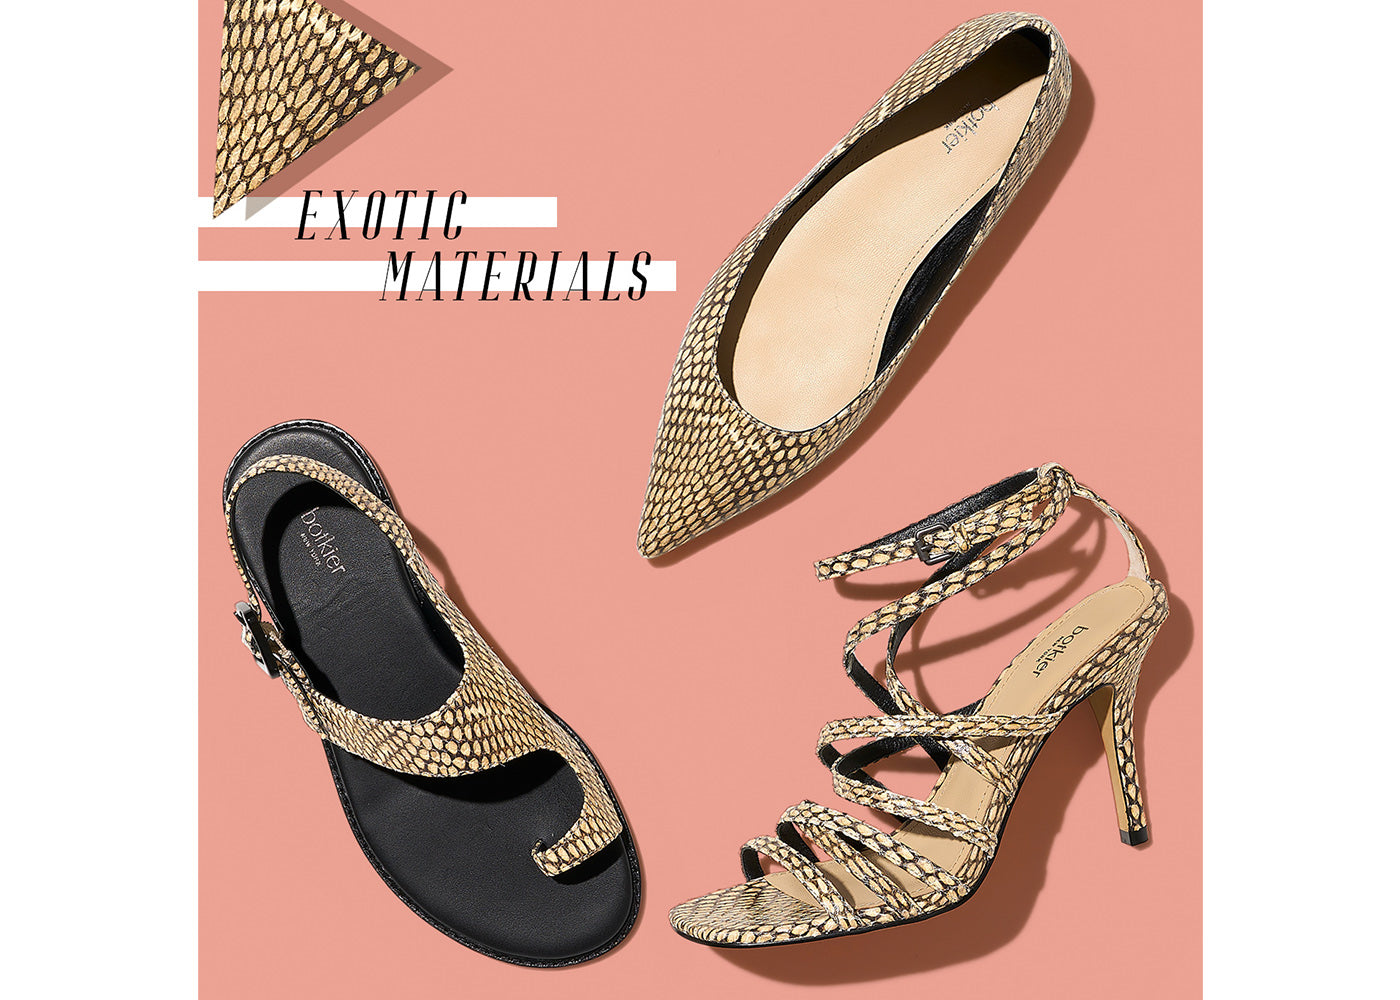 botkier blog summer shoes exotic